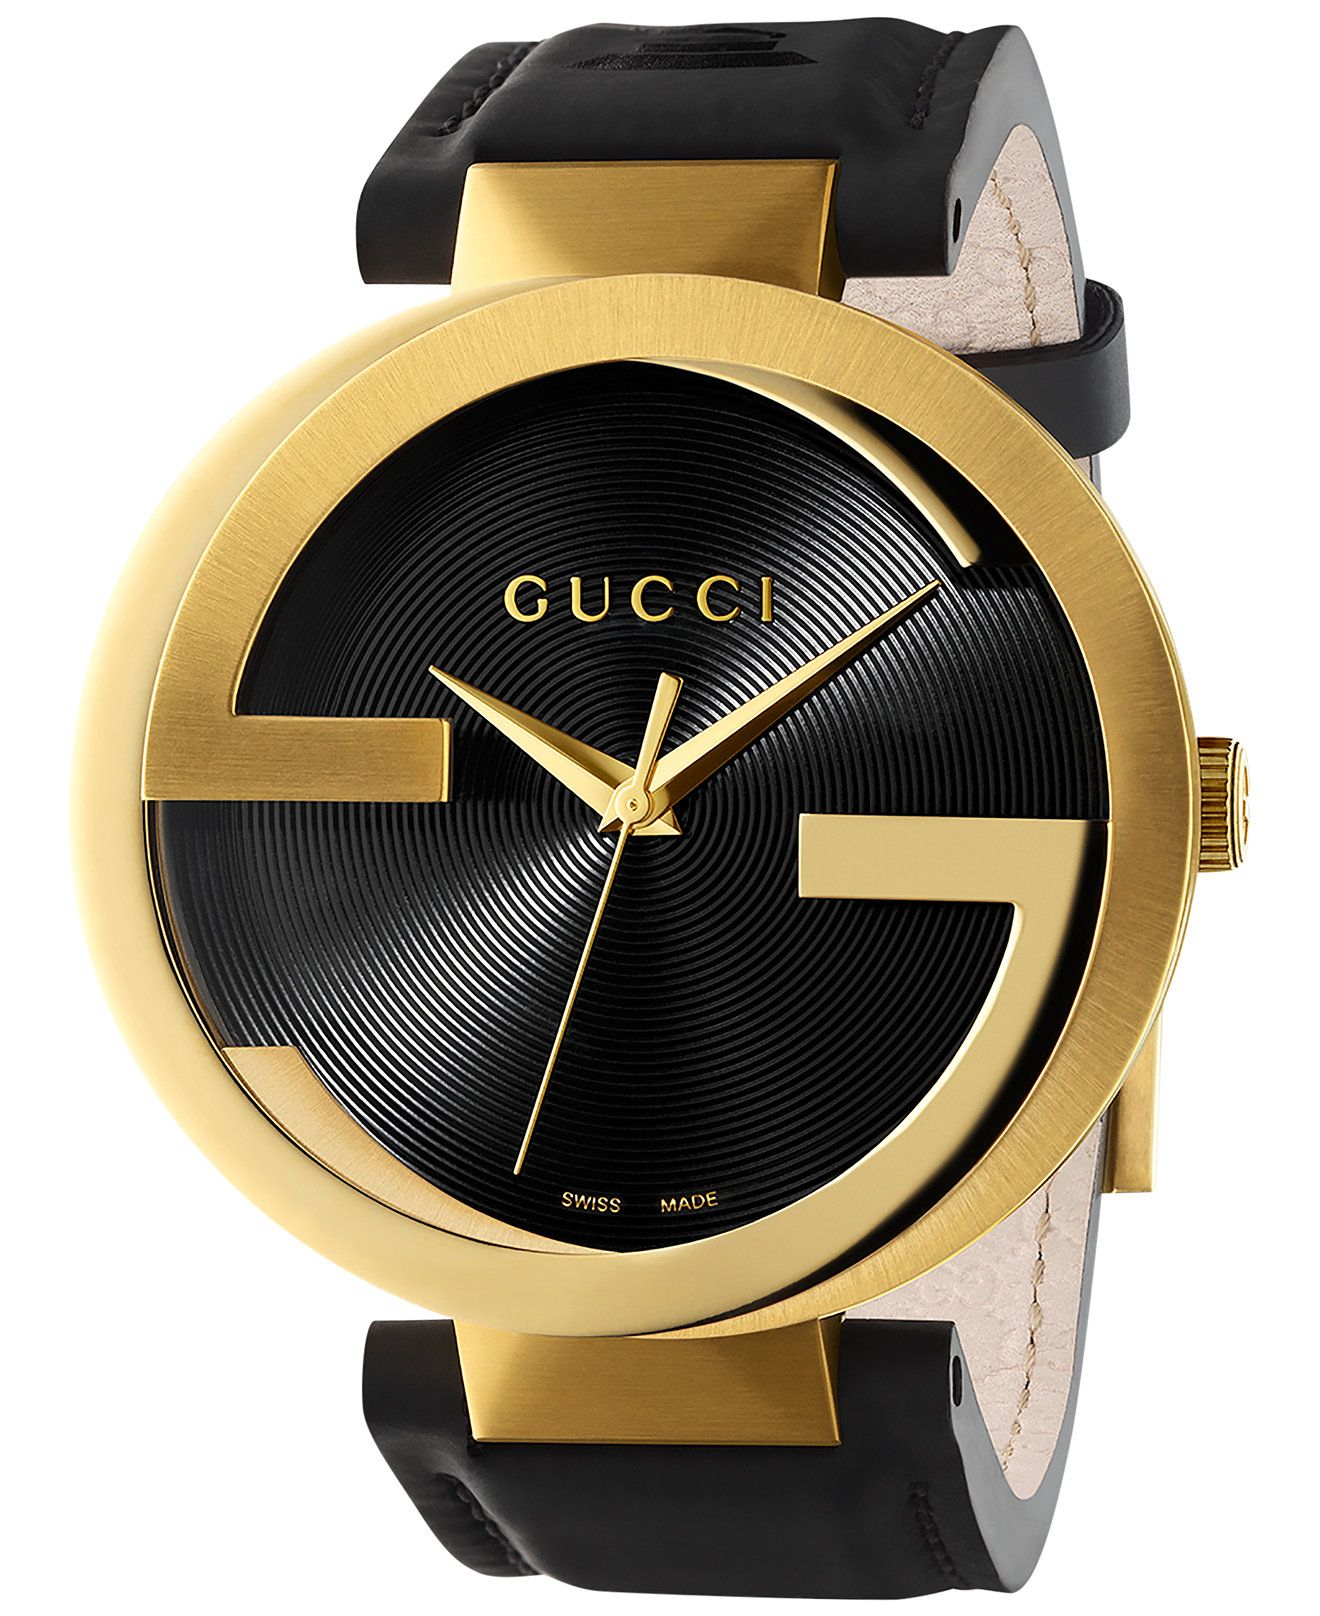 5936b2320d2 Gucci Unisex Swiss Interlocking Latin Grammy® Special Edition Black Leather  Strap Watch 42mm YA133208 - Watch Brands - Jewelry   Watches - Macy s